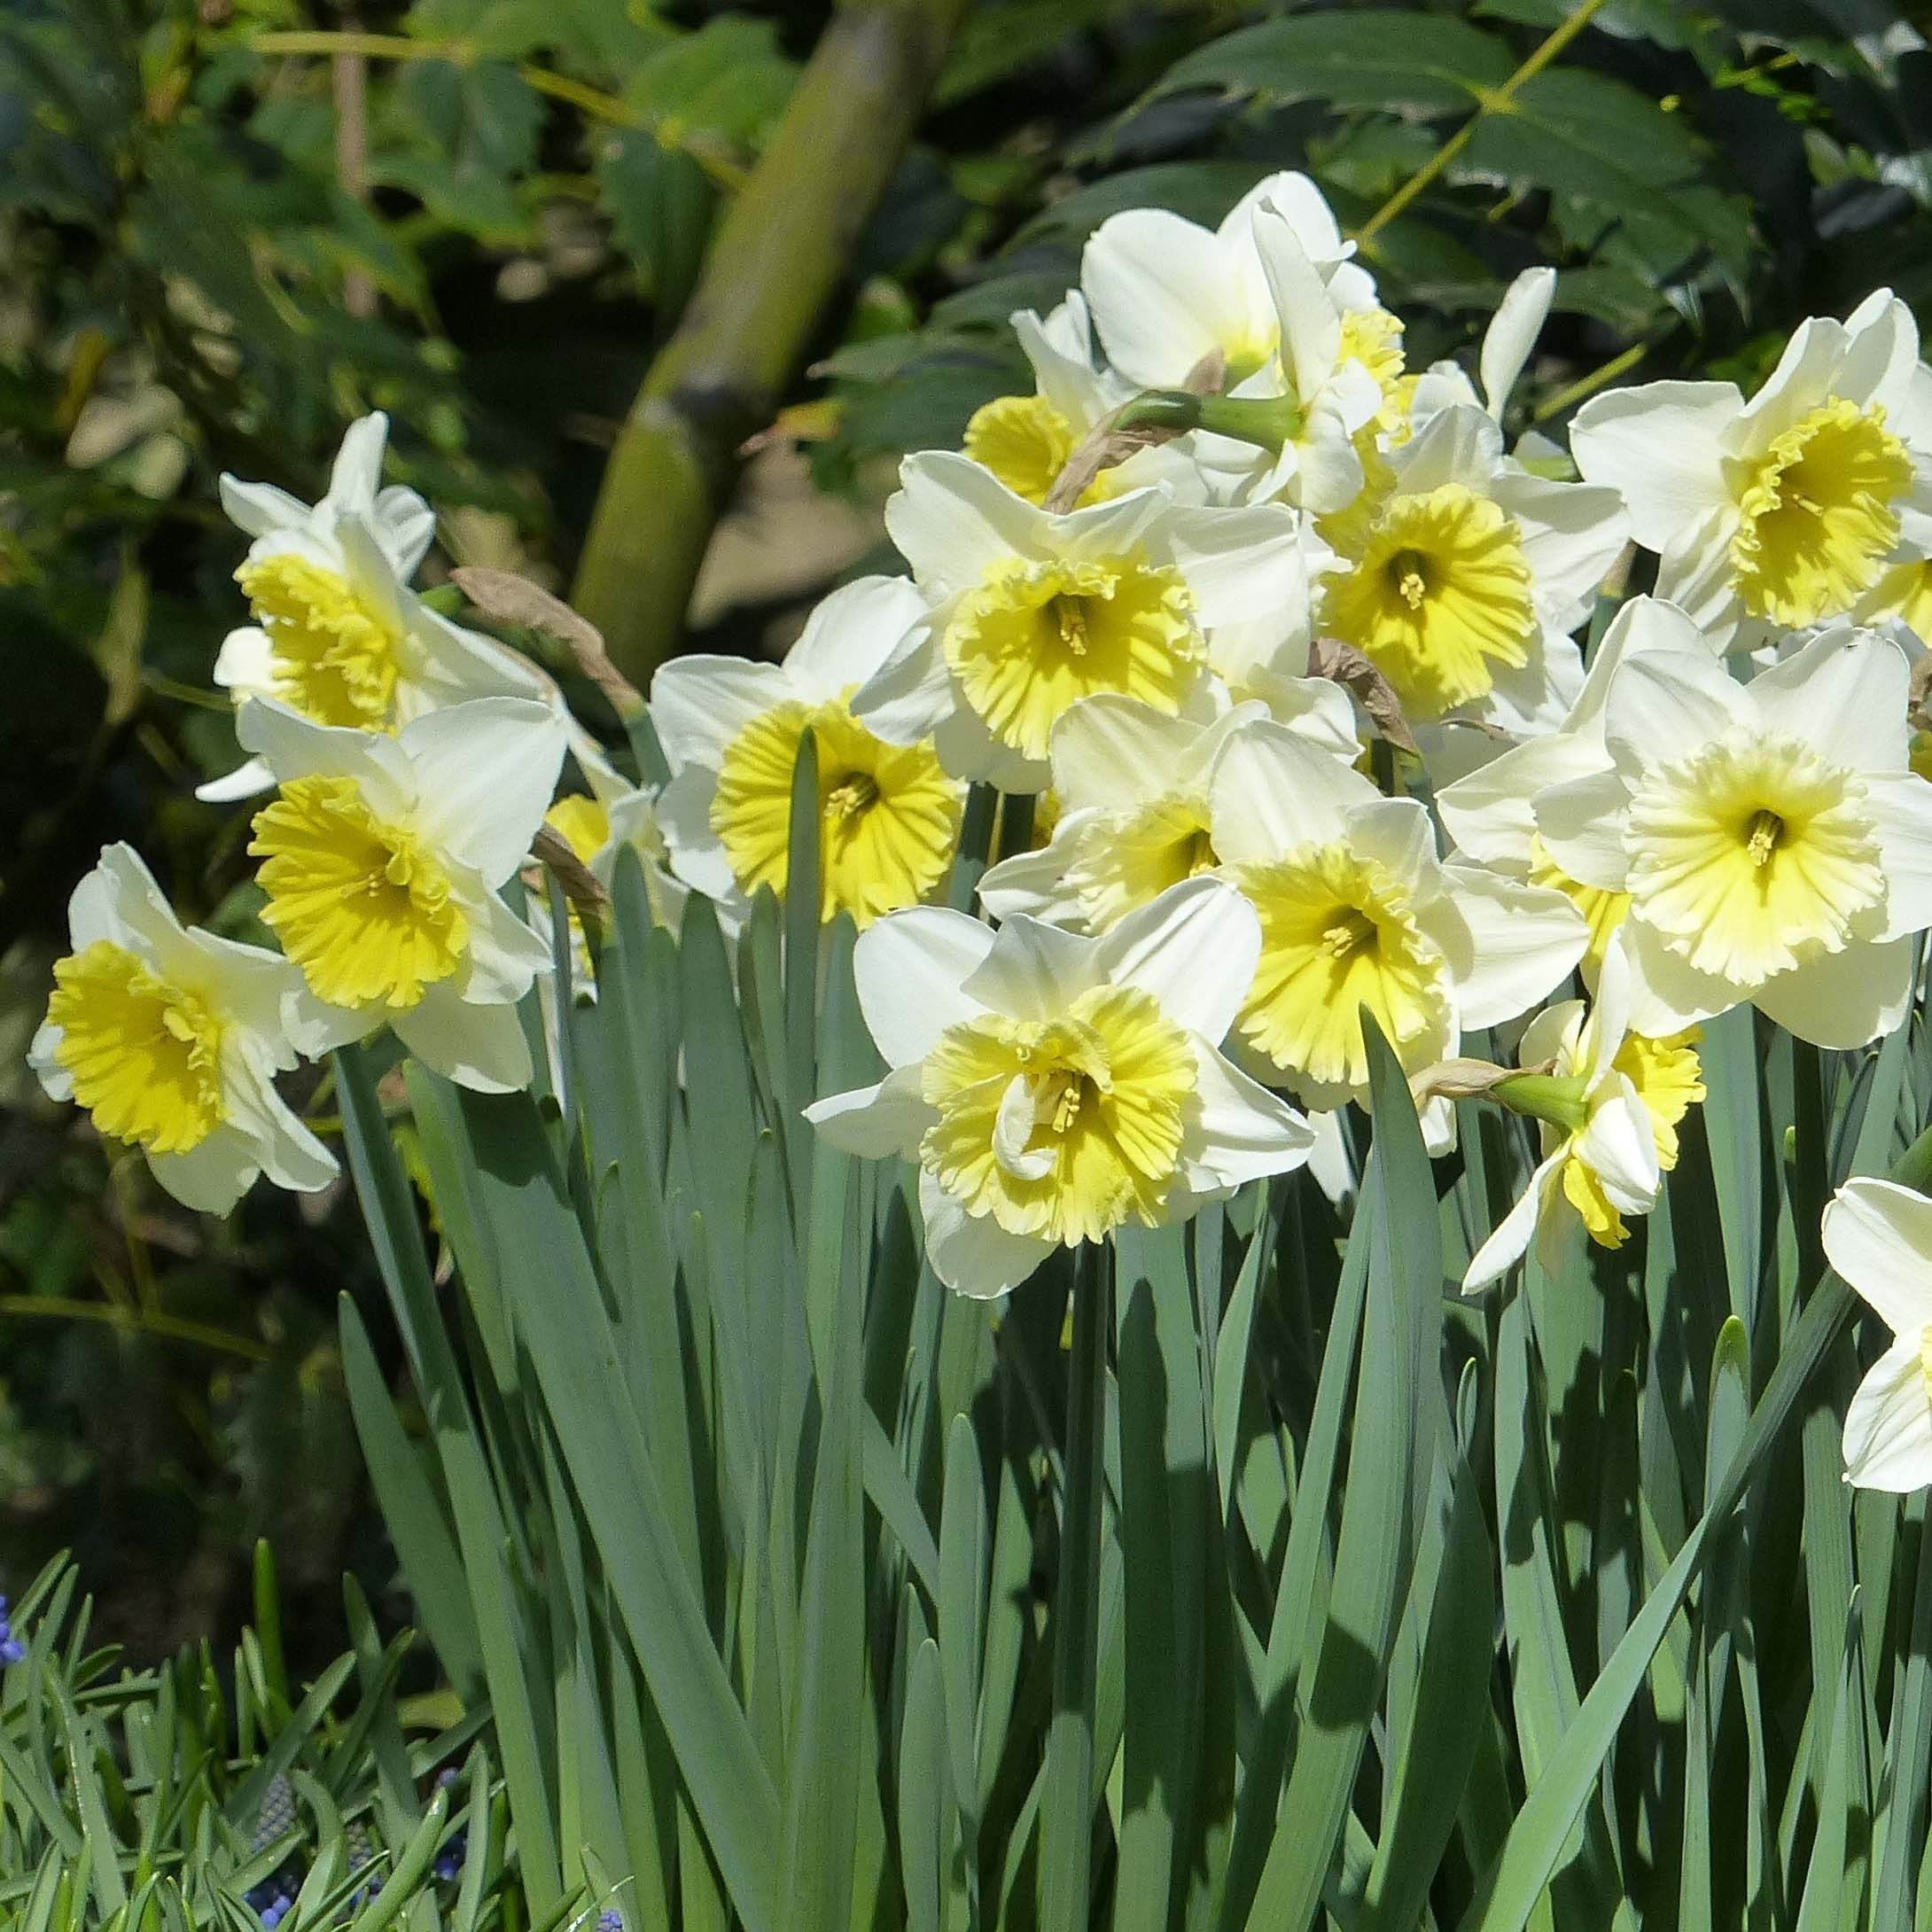 Narcissus ice follies narcisse grande couronne jaune for Bouquet de fleurs 8 mars